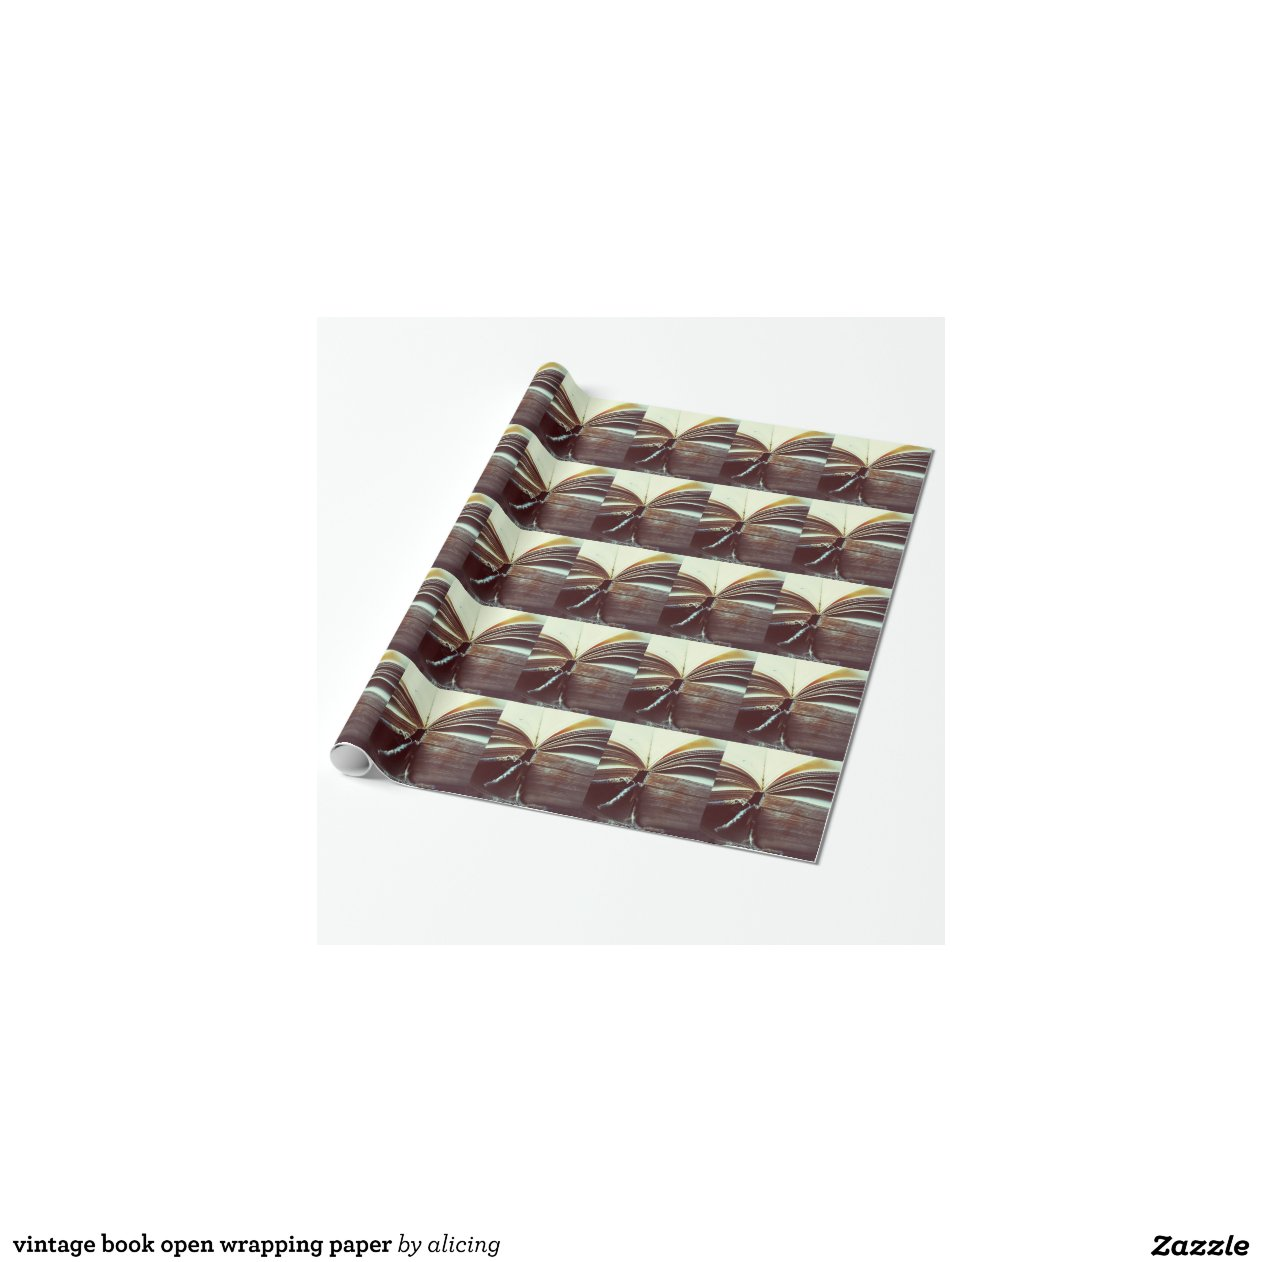 Vintage Book Cover Wrapping Paper : Vintage book open wrapping paper zazzle